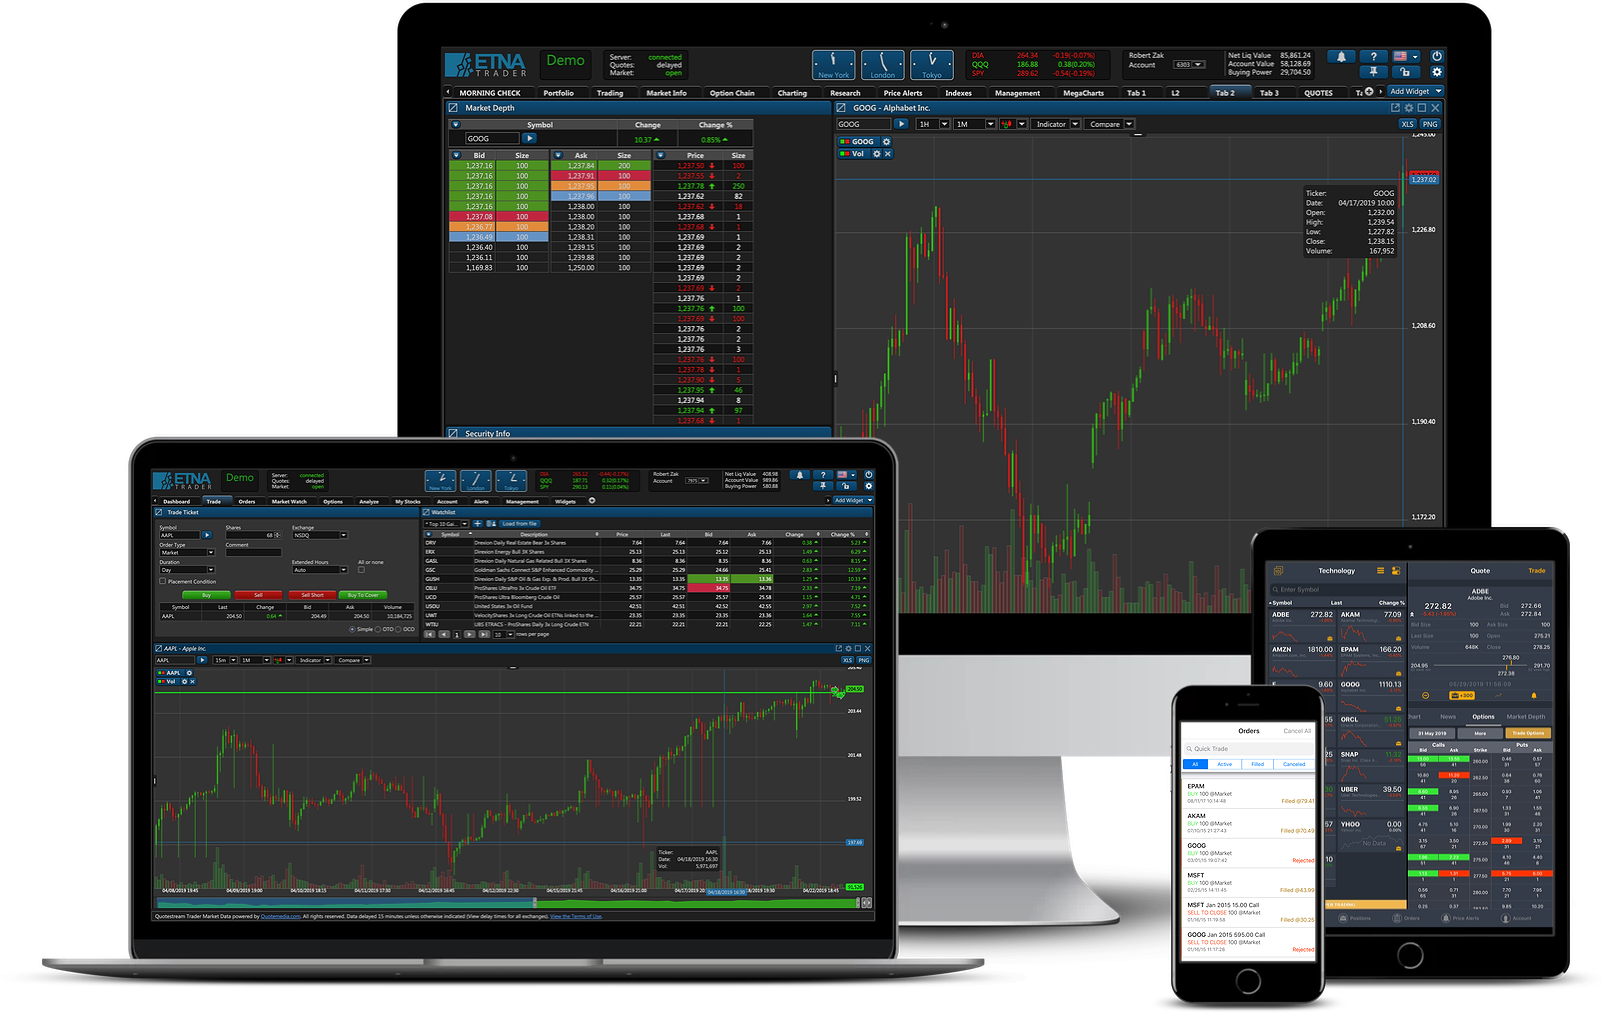 Kelebihan Dan Kekurangan Trading Option - Futures And Options Trading Simulator